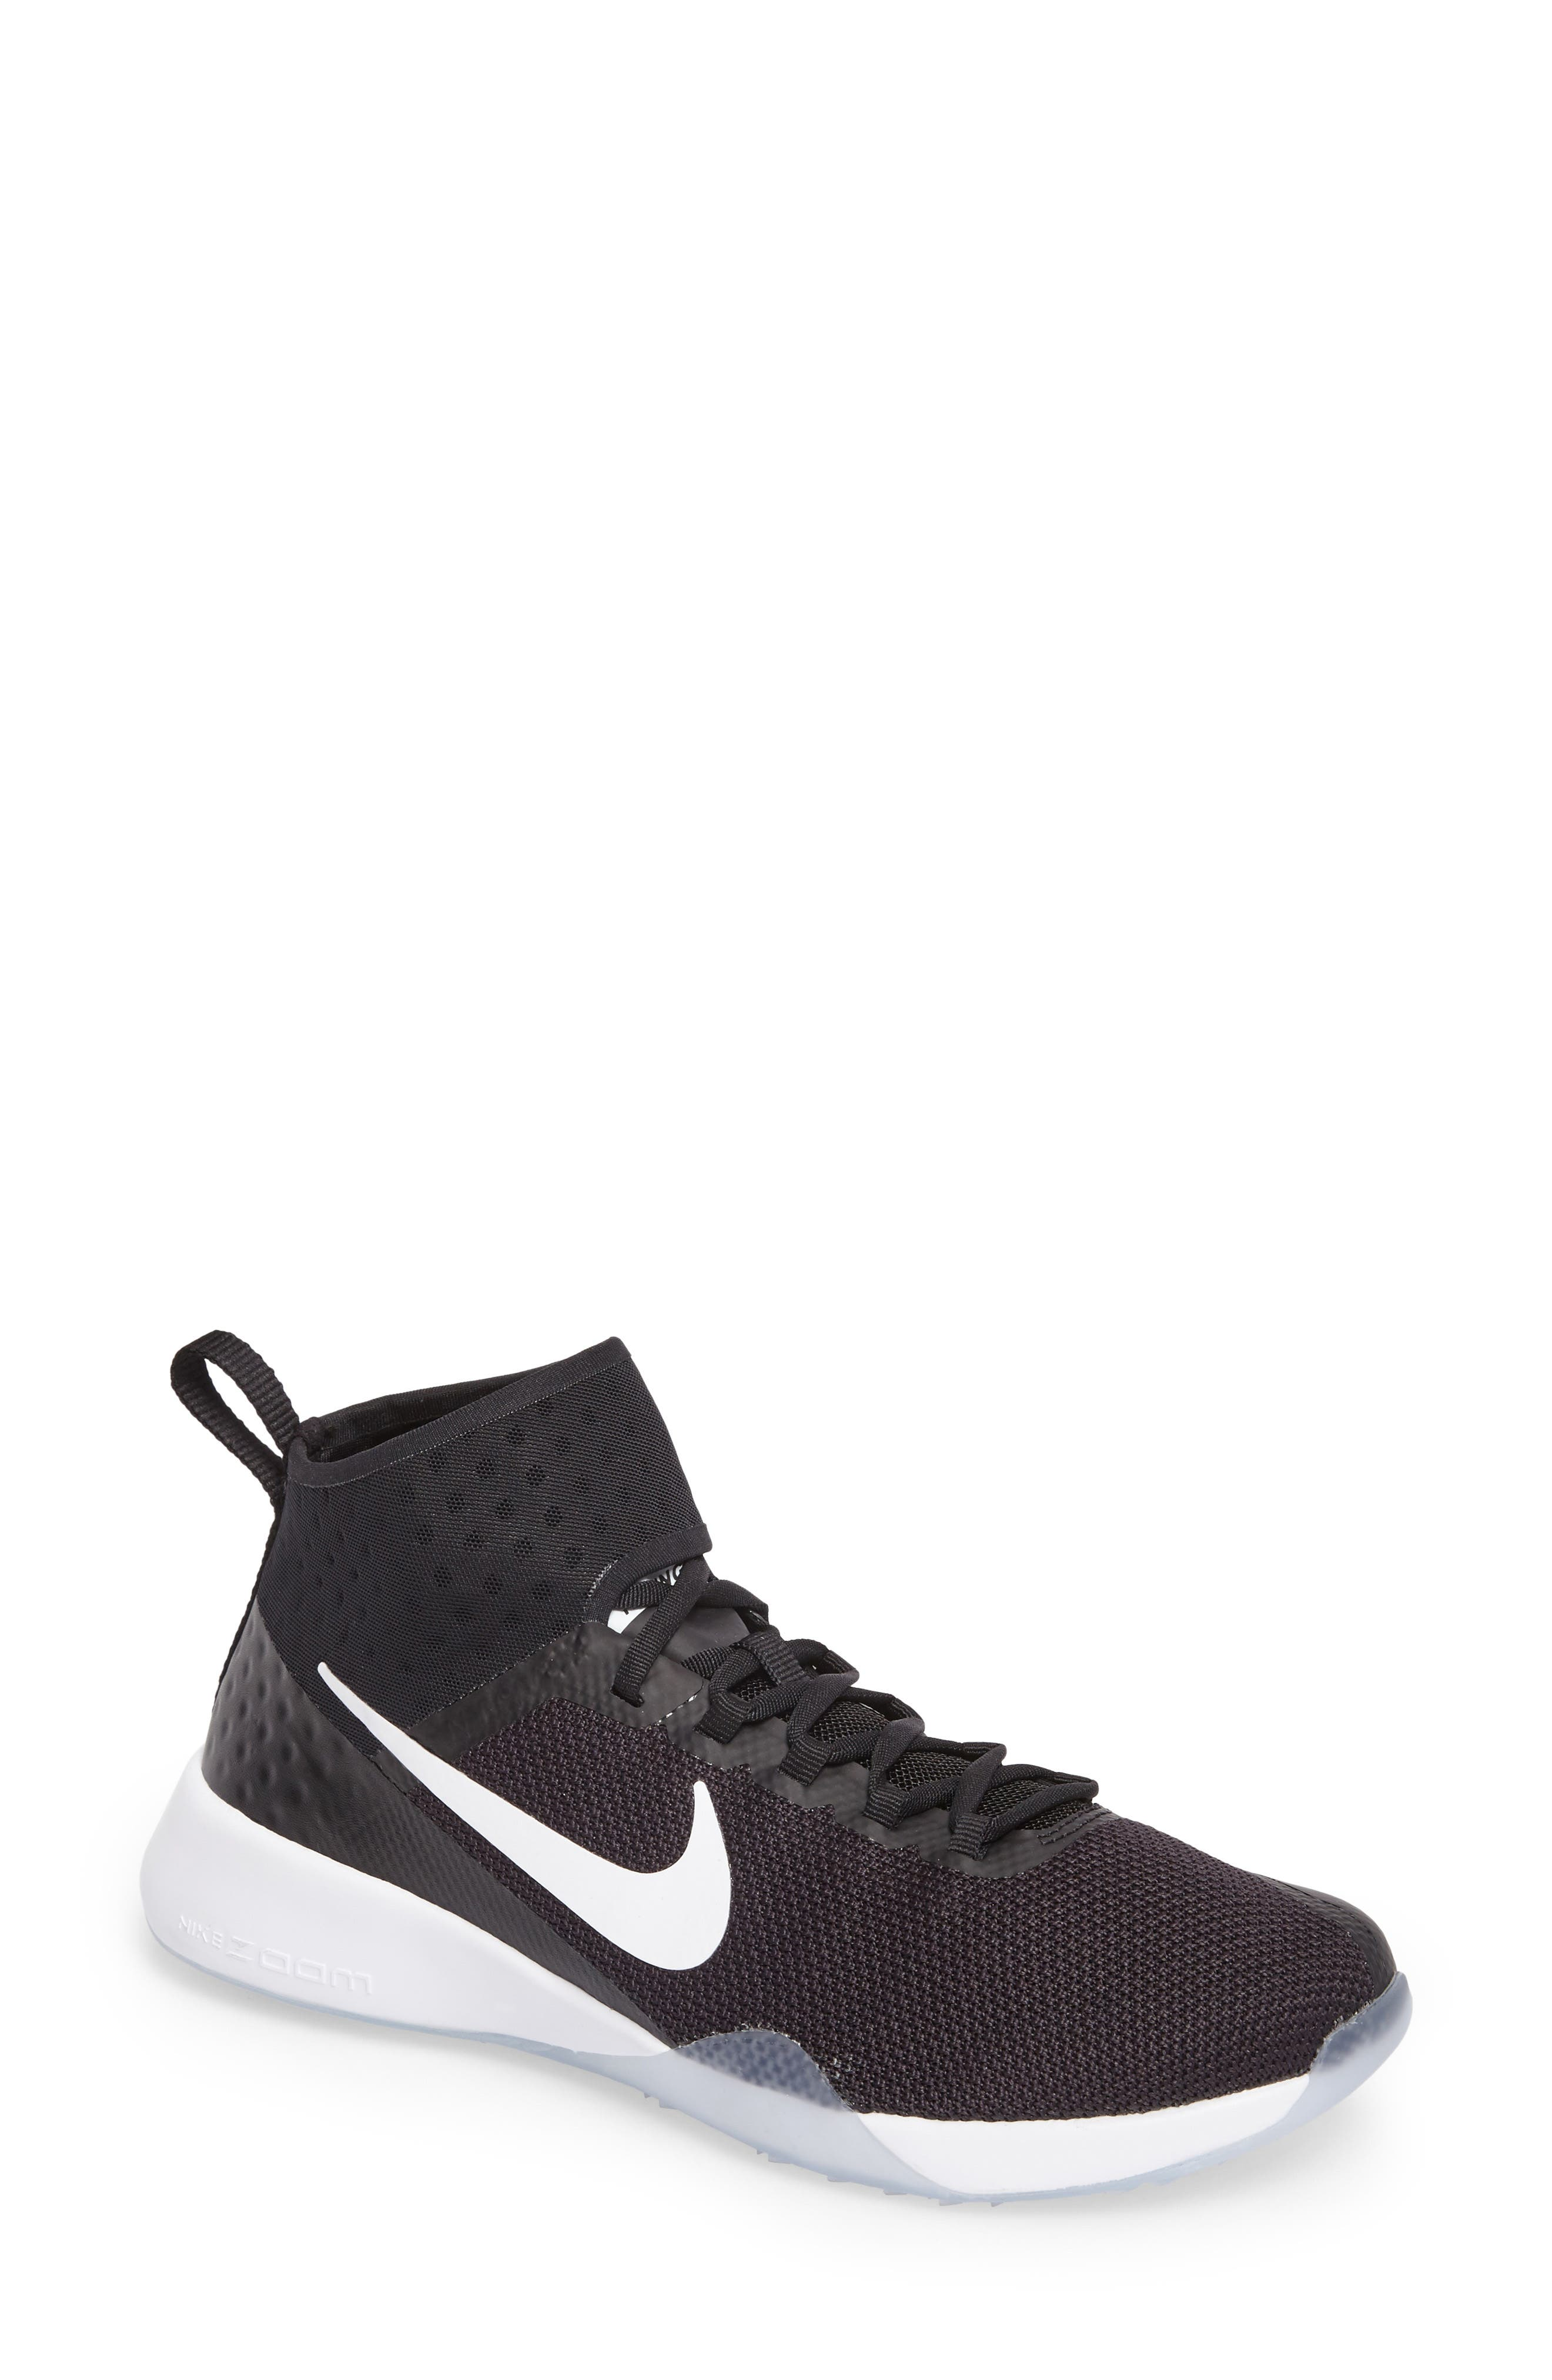 NikeLab Air Zoom Strong 2 Training Shoe,                         Main,                         color, Black/ White